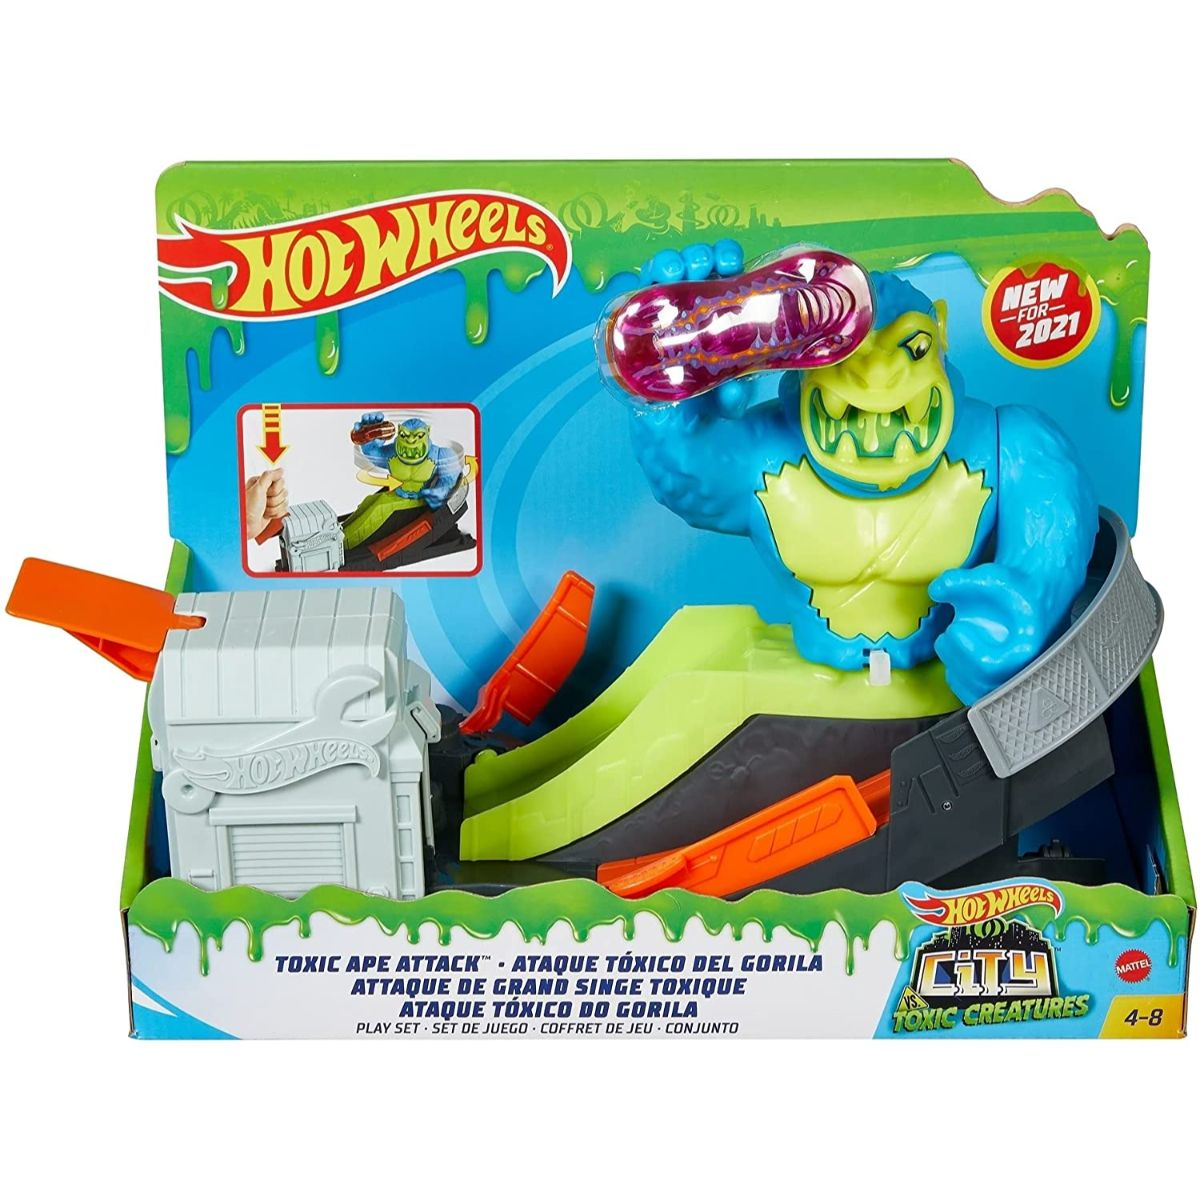 Set de joaca Circuit cu obstacole Hot Wheels City, Toxic Ape Attack, GTT66